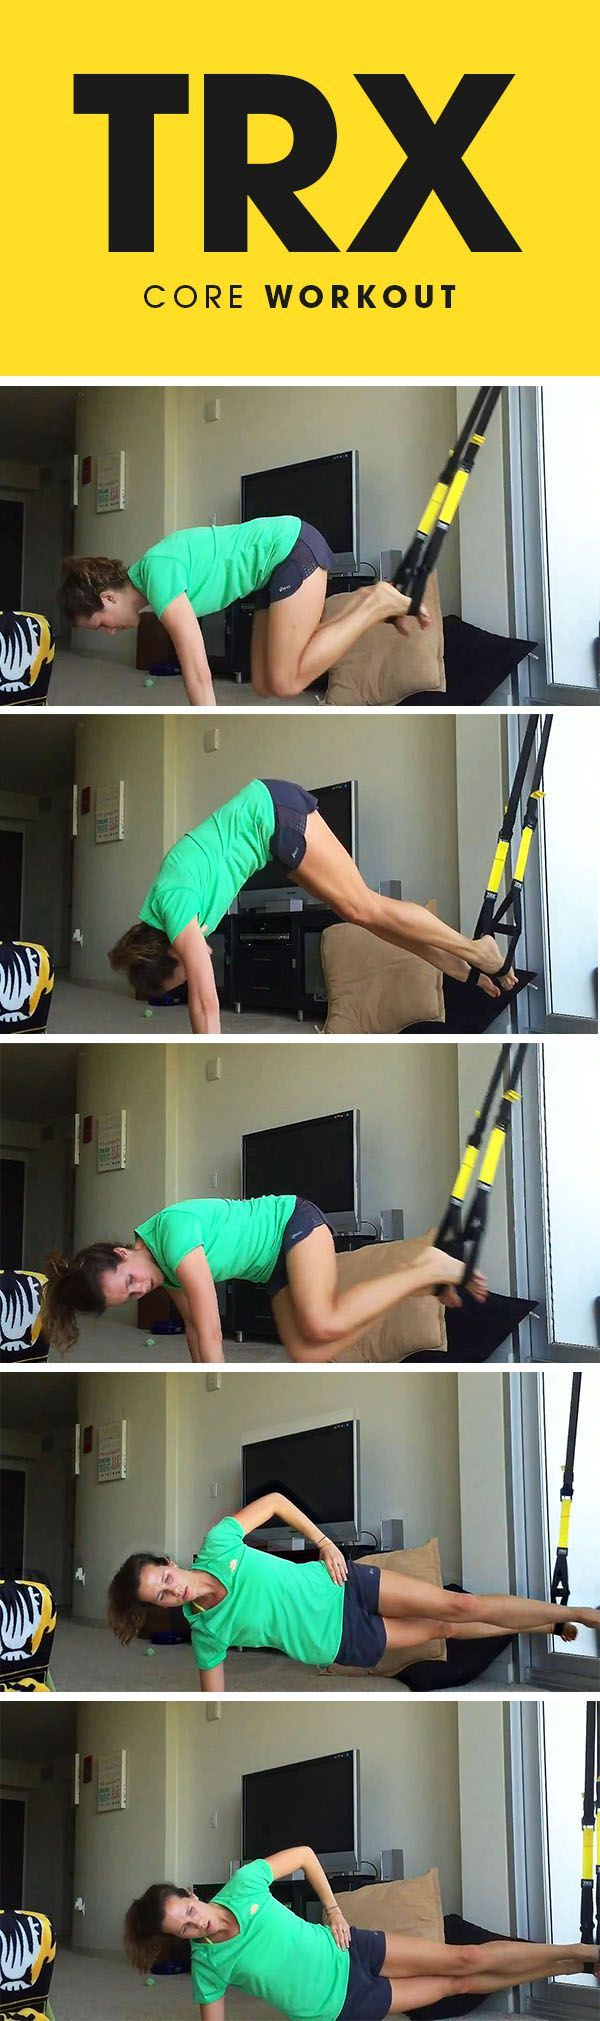 TRX Ab Workout for the entire core